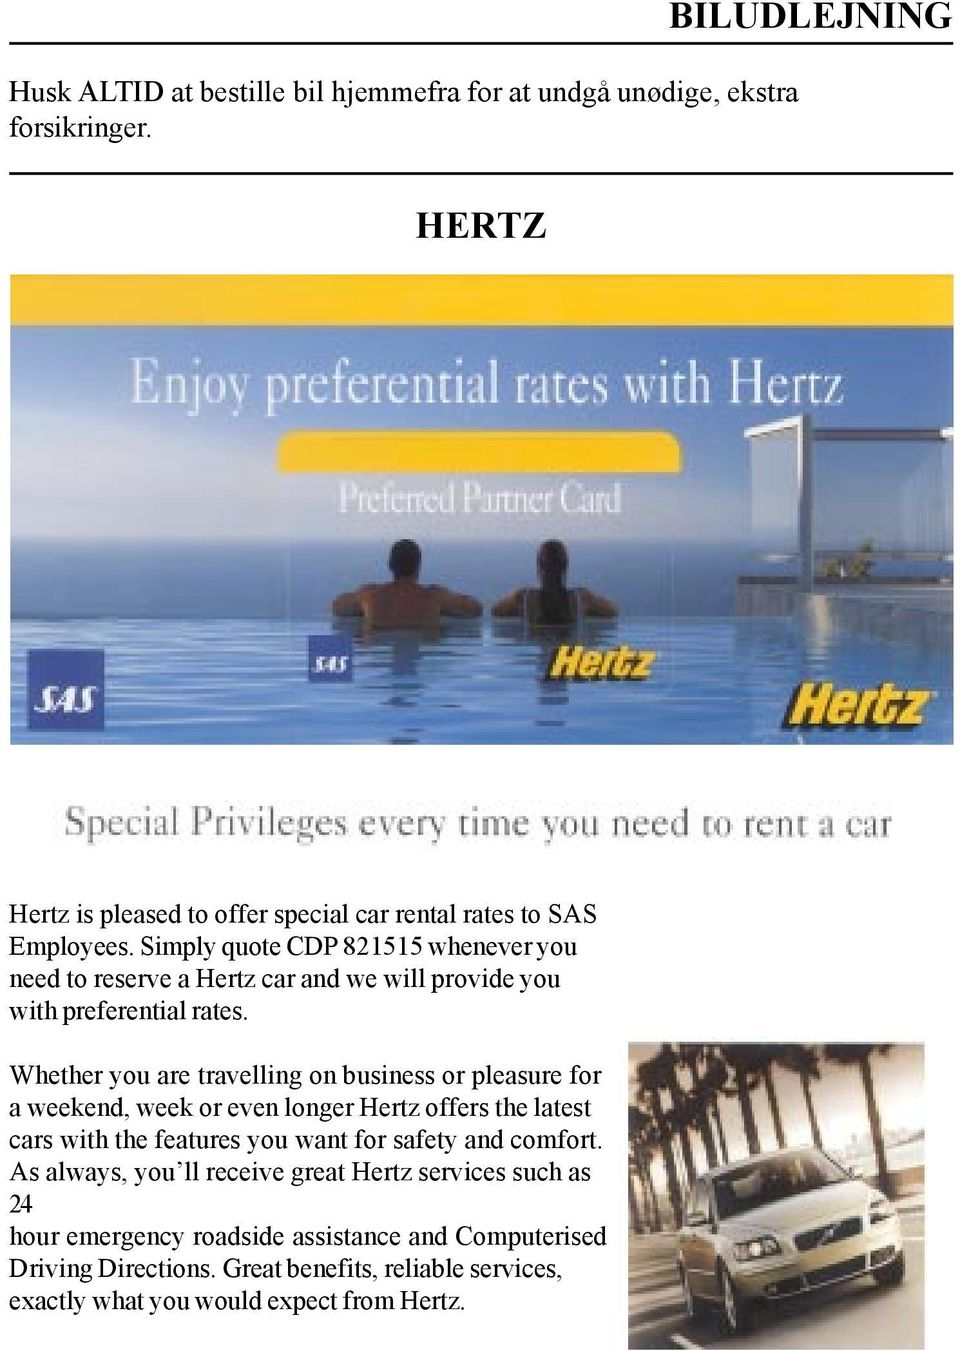 Simply quote CDP 821515 whenever you need to reserve a Hertz car and we will provide you with preferential rates.